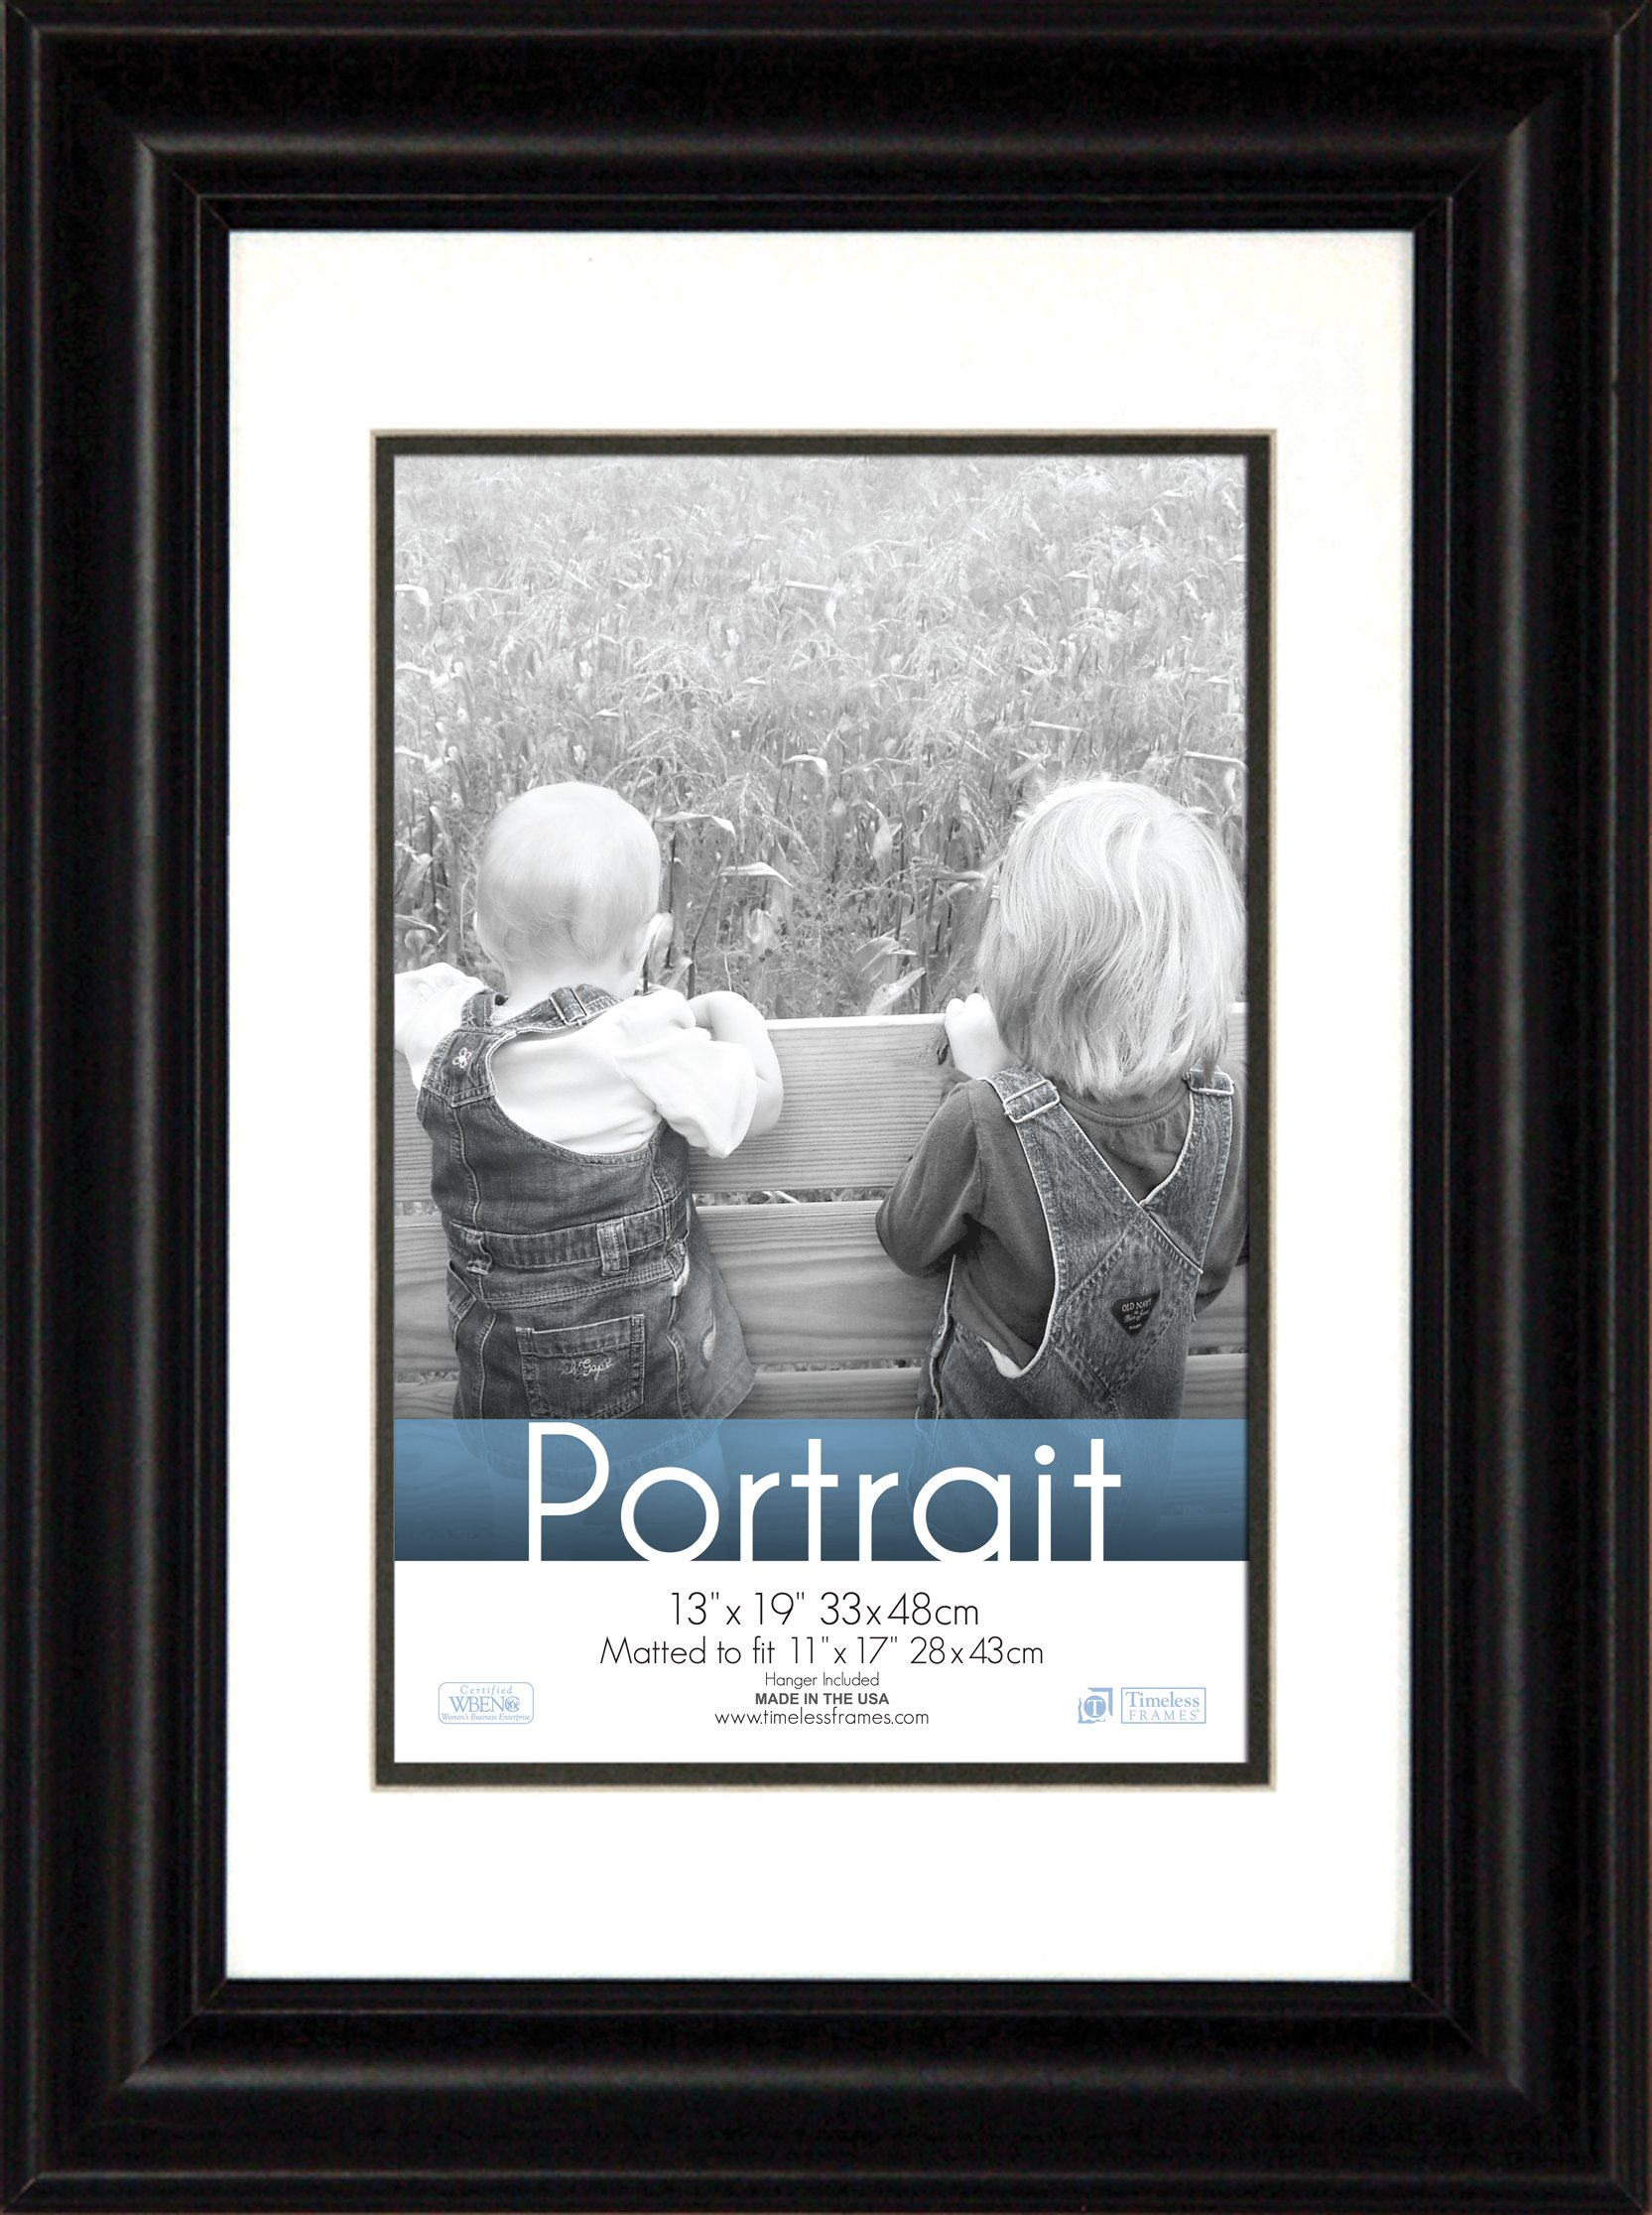 Timeless Frames 13x19 Inch Fits 11x17 Inch Photo Lauren Portrait Wall Frame, Black